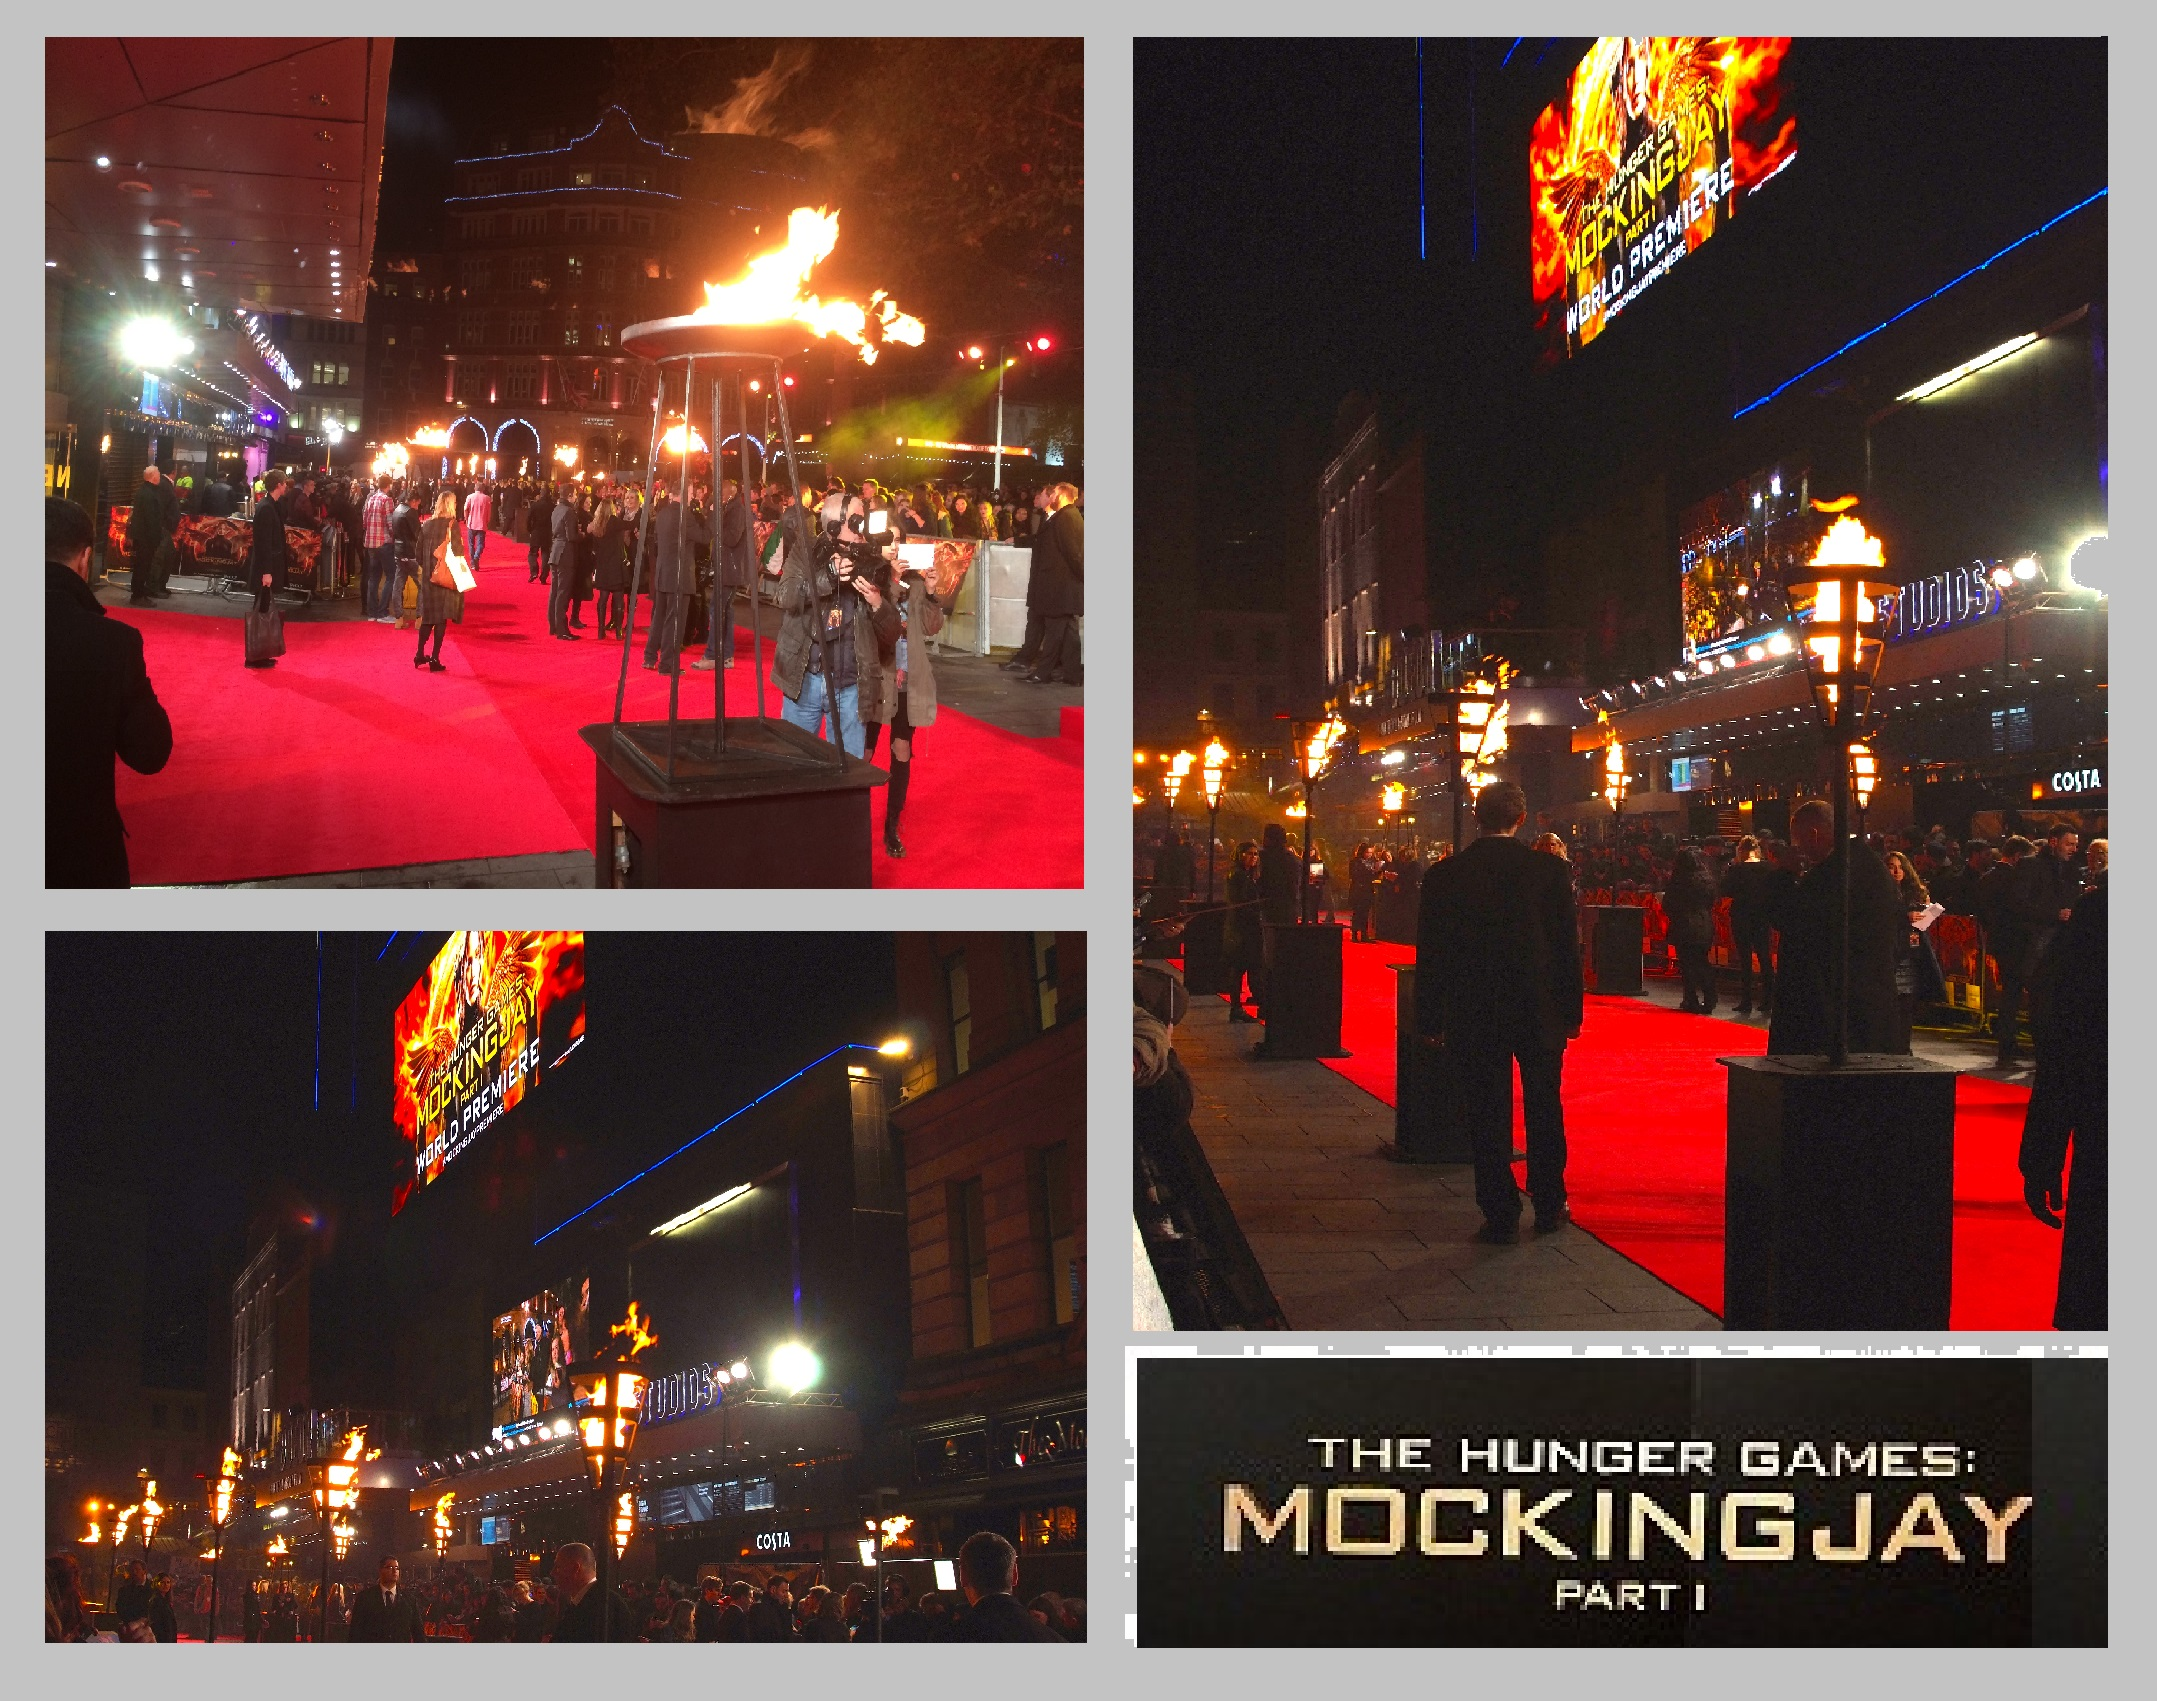 MOCKINGJAY PART 1 LONDON PREMIERE FLAMBES